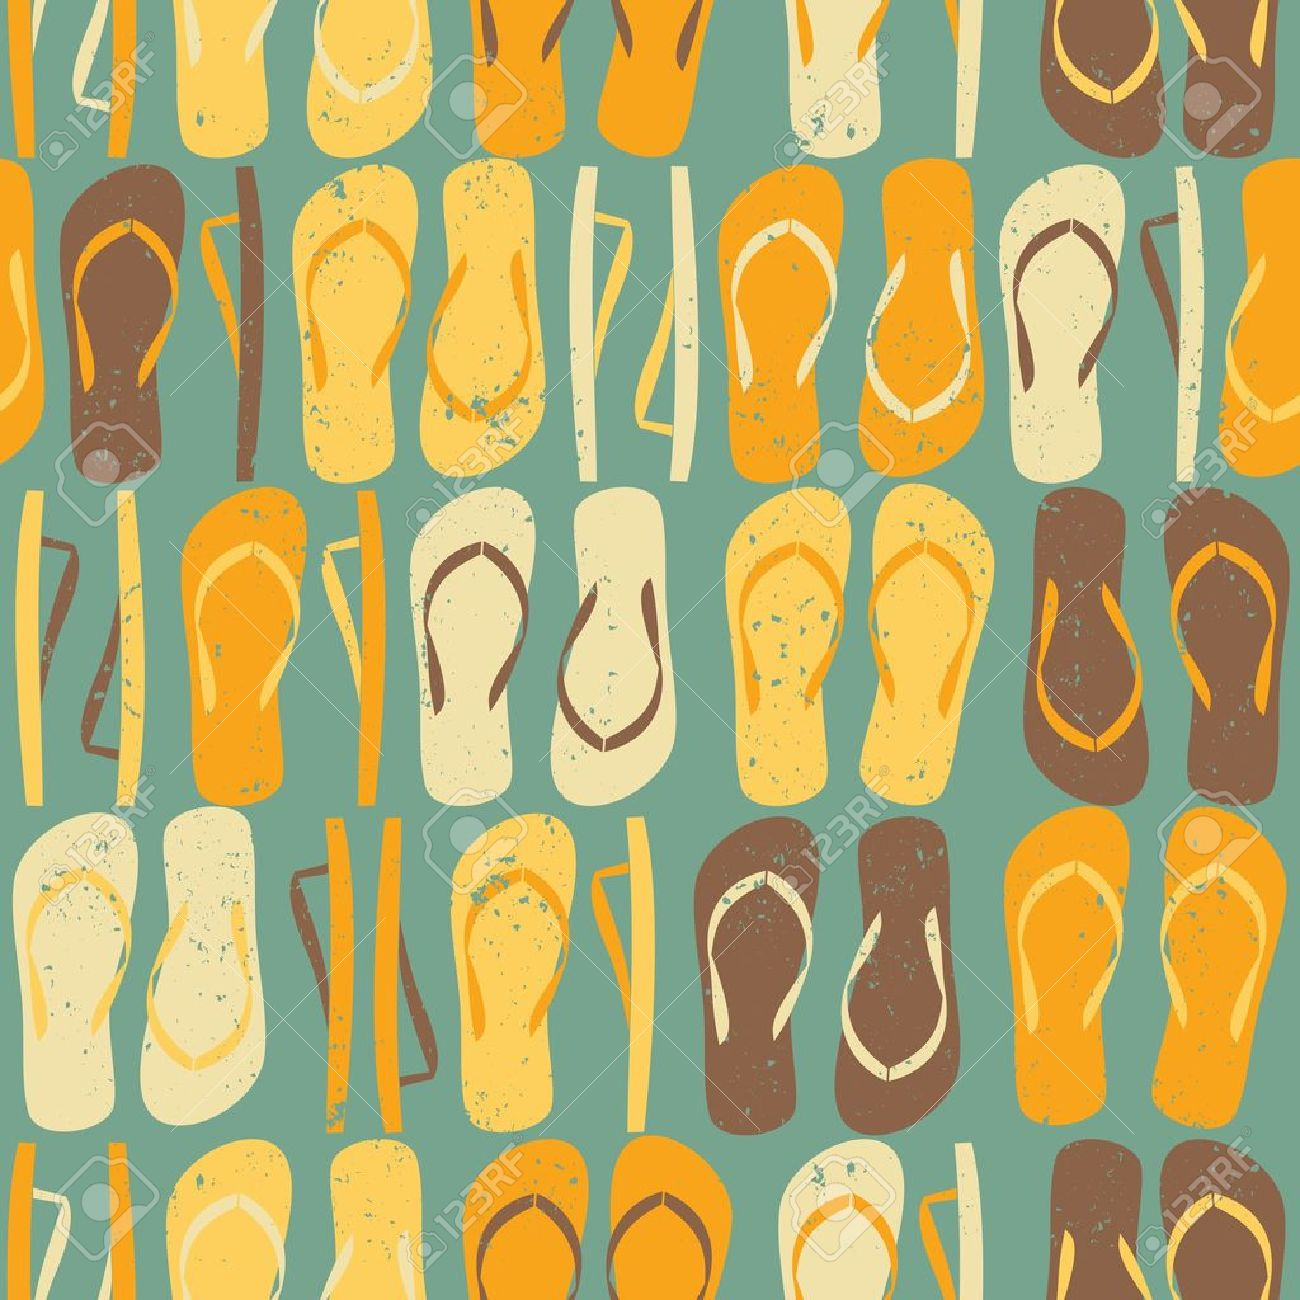 8b3307c5bd47 Vintage Style Seamless Pattern With Colorful Flip Flops. Royalty ...